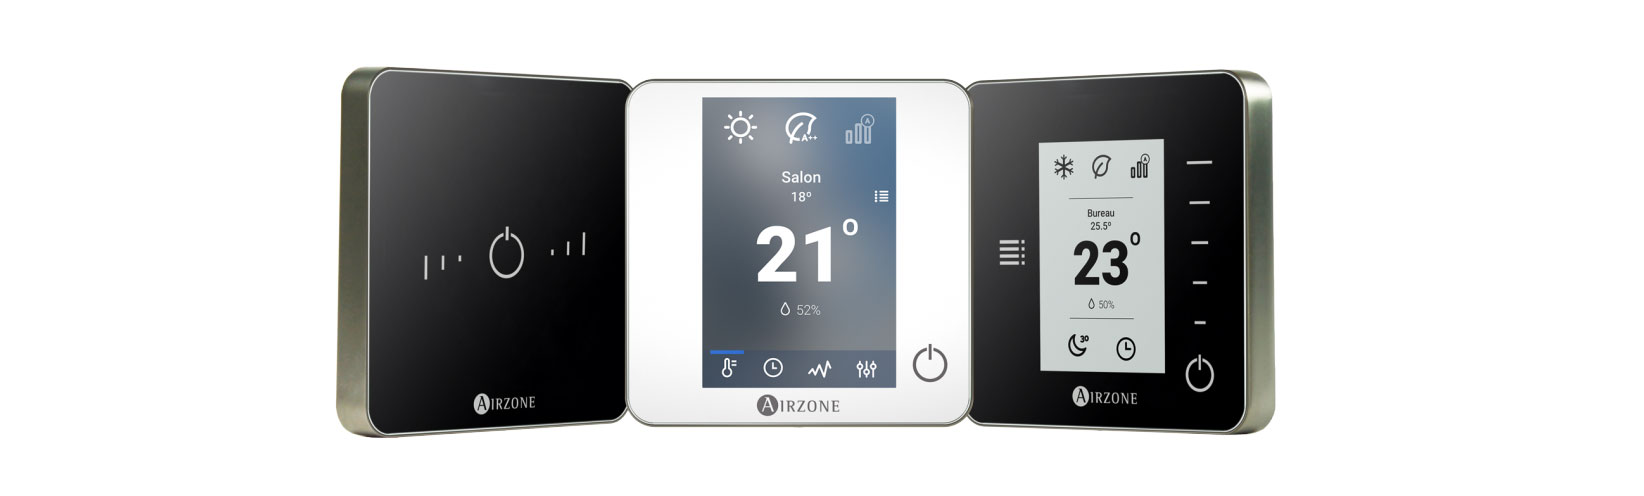 3 thermostats Airzone